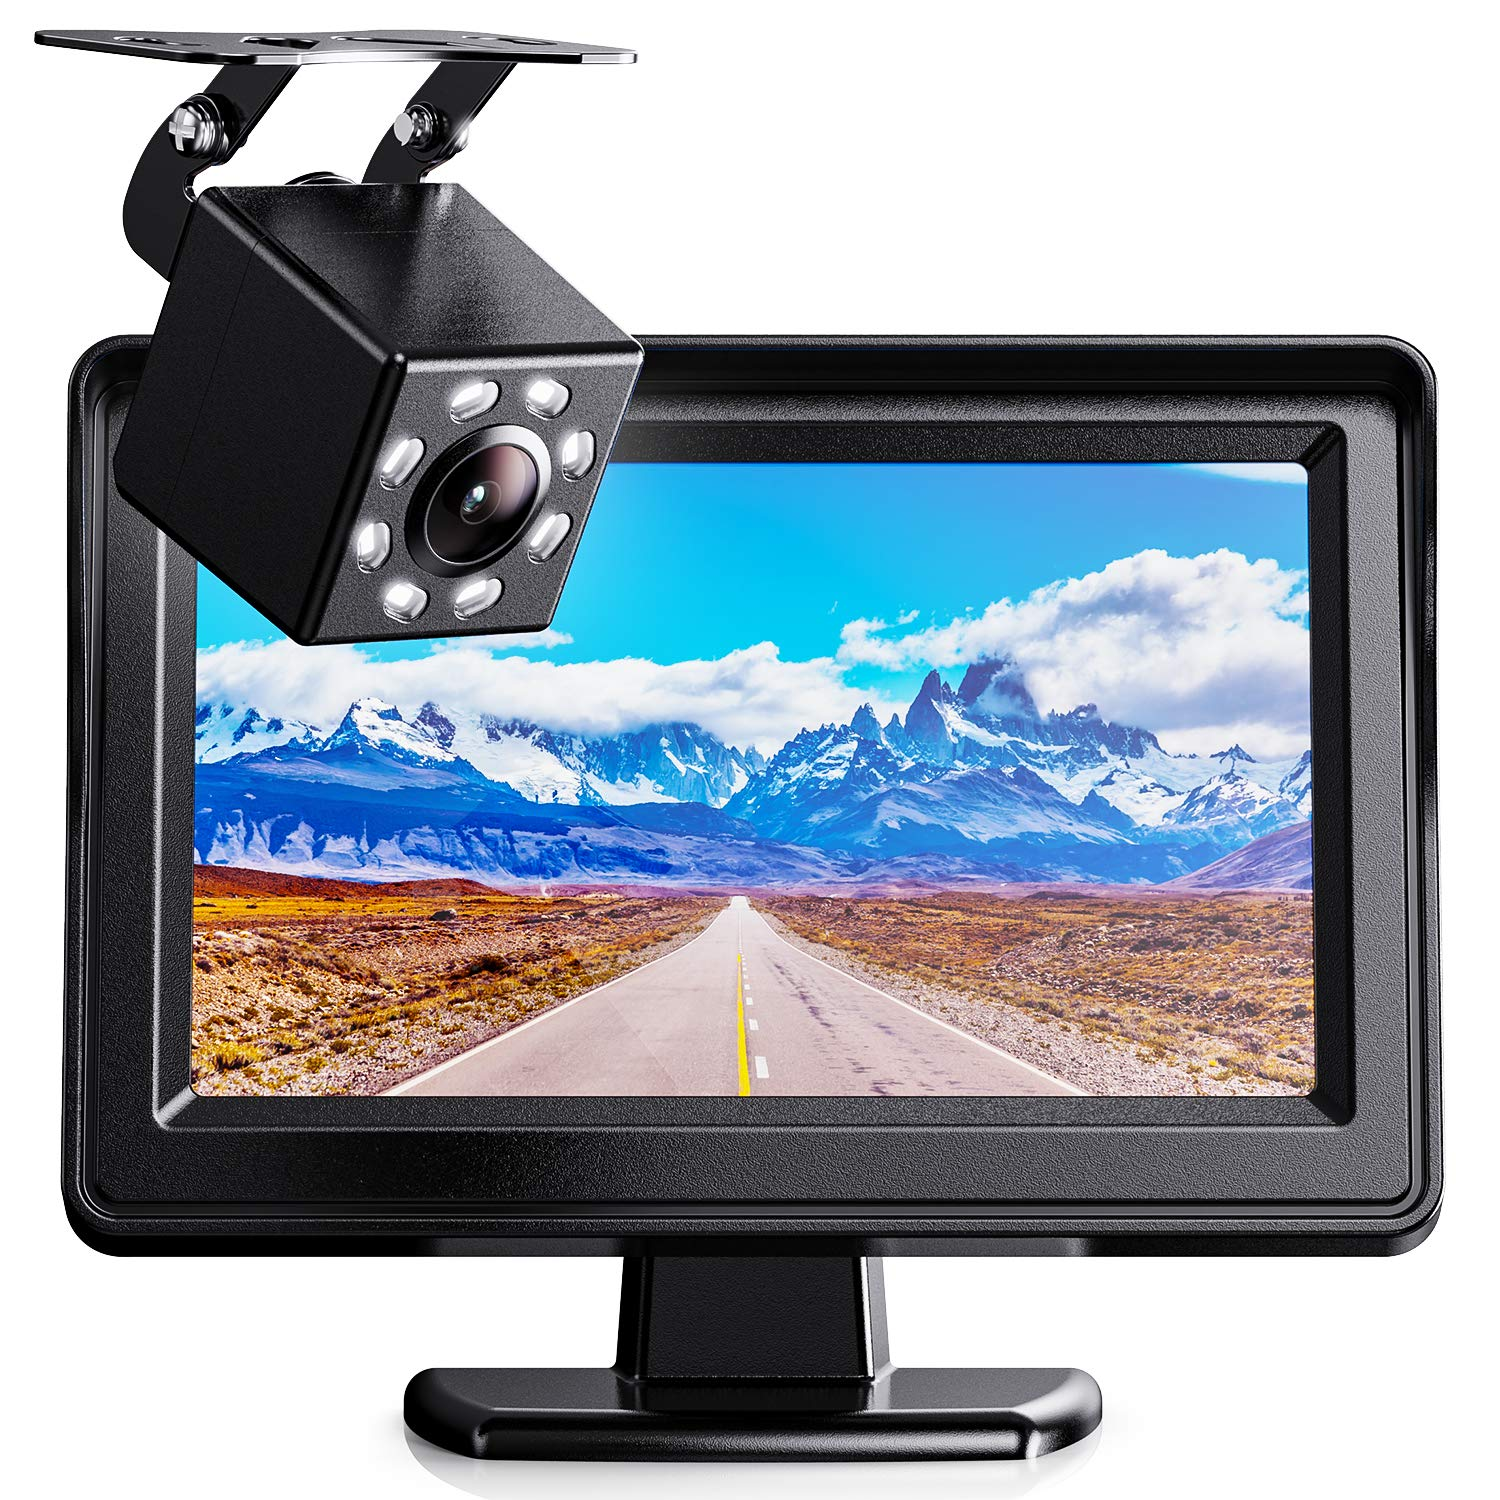 """Xroose Vehicle Backup Cameras Kits 4.3"""" HD Monitor + Wired Back Up Cam for Rearview Reversing Cars/Sedans/Truck, 12-24V"""